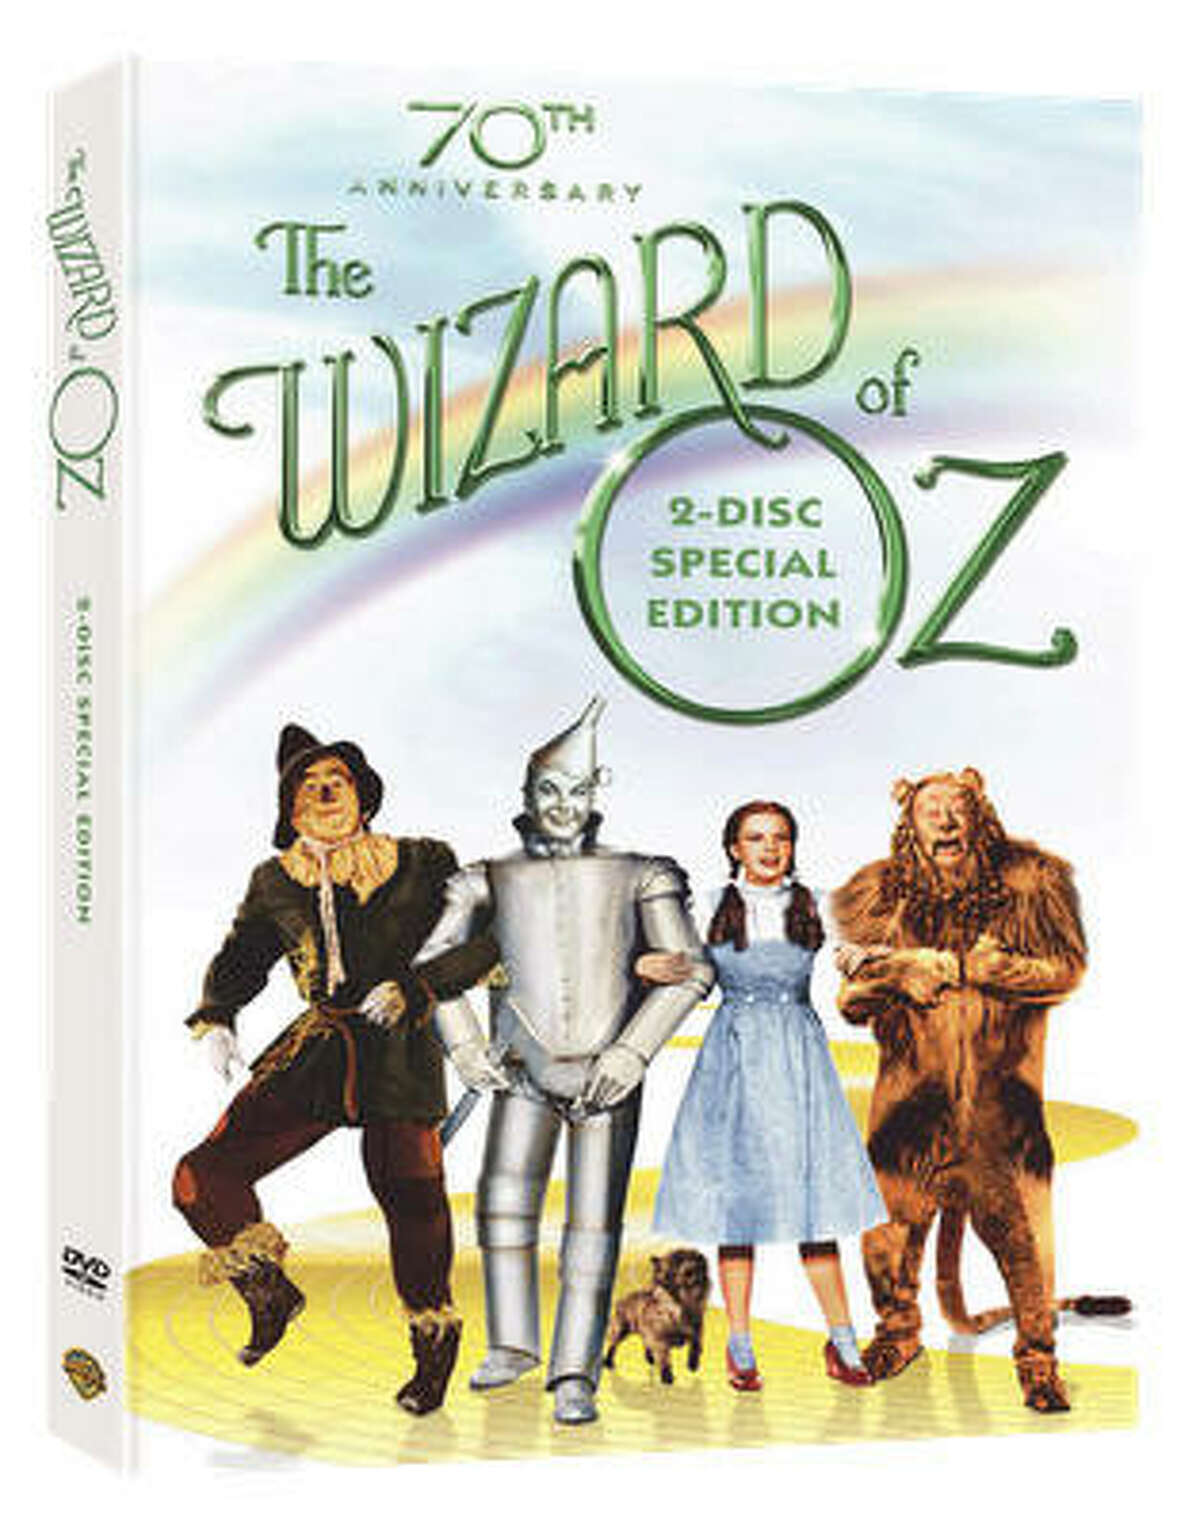 The Wizard of Oz (70th Anniversary Two-Disc Special Edition) will cost you $24.98. The Wizard of Oz (70th Anniversary Ultimate Collector's Edition) will run you $69.99 and includes: